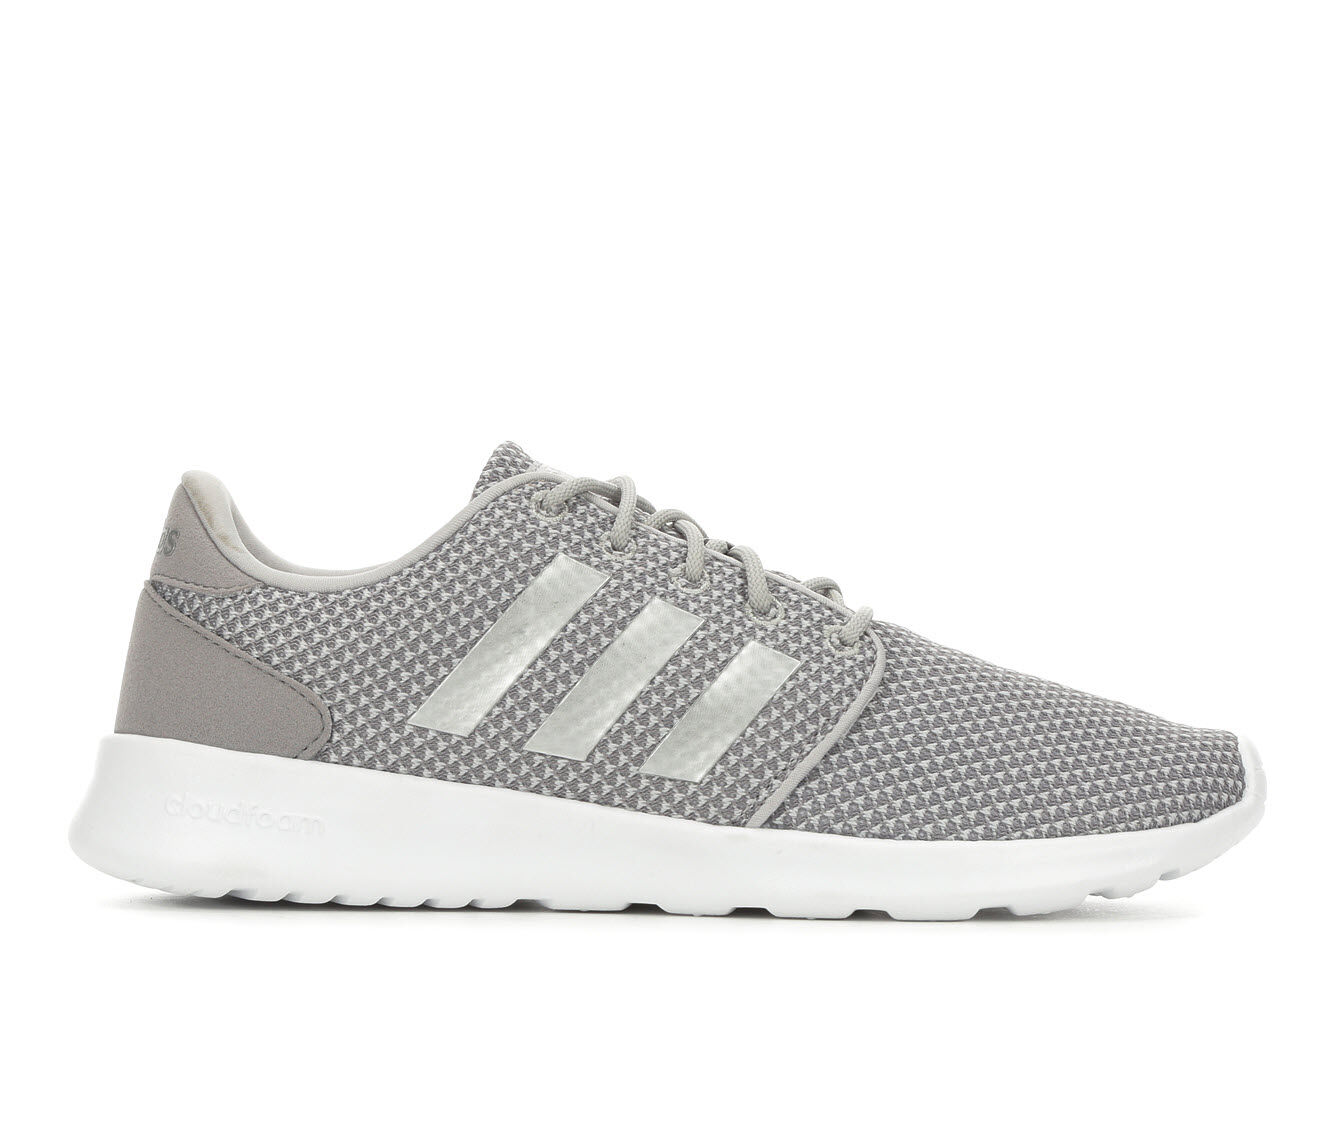 Women's Adidas Shoes & Sneakers